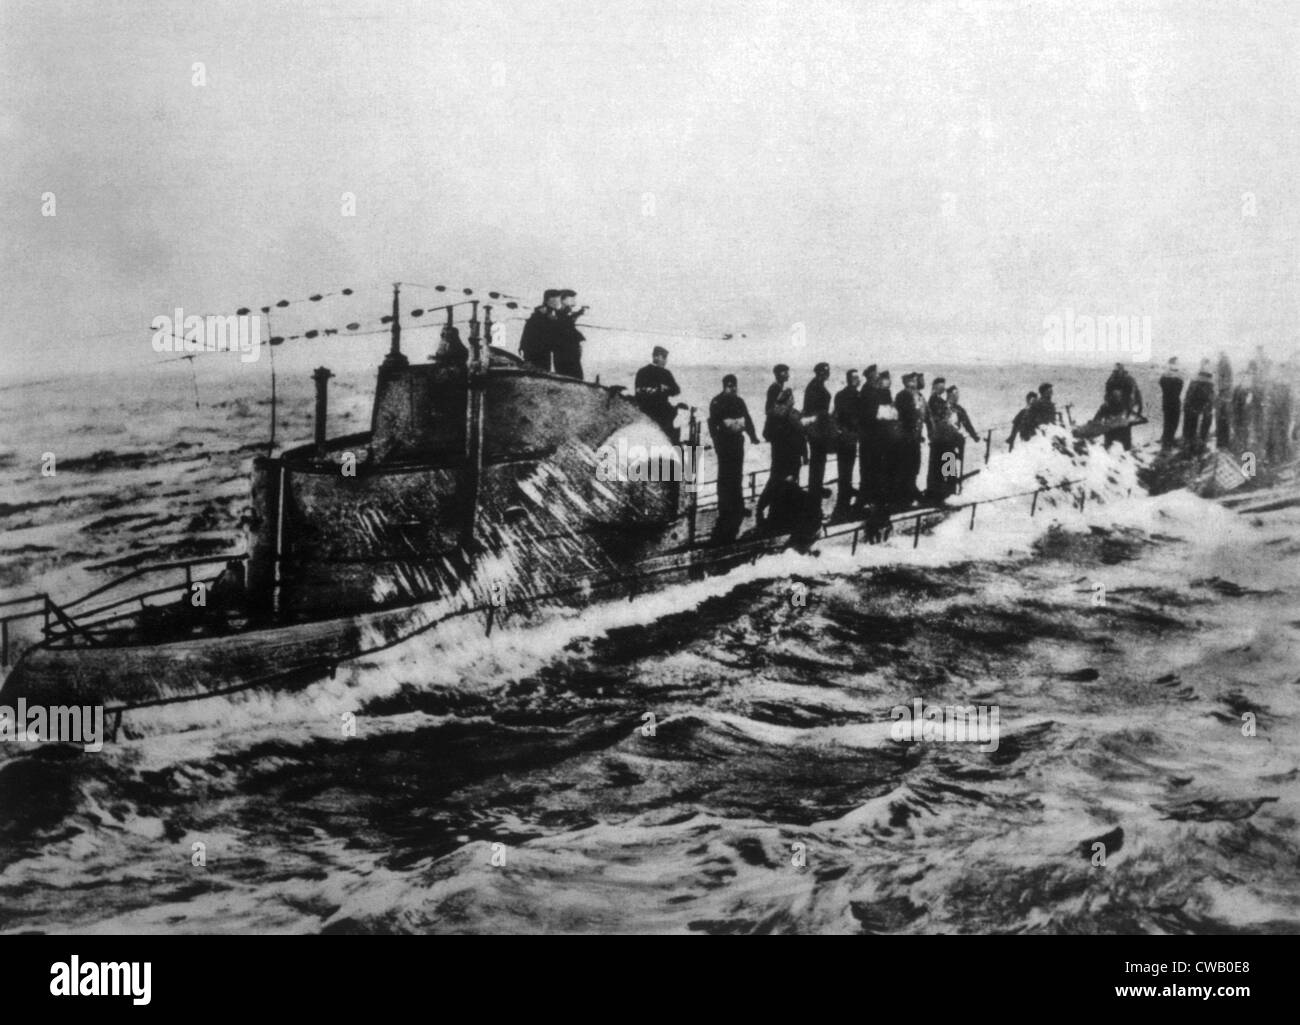 World War I, crew of the German U-boat U-58 on deck as it is captured by the American Navy, U.S. Navy photo, 1918 - Stock Image